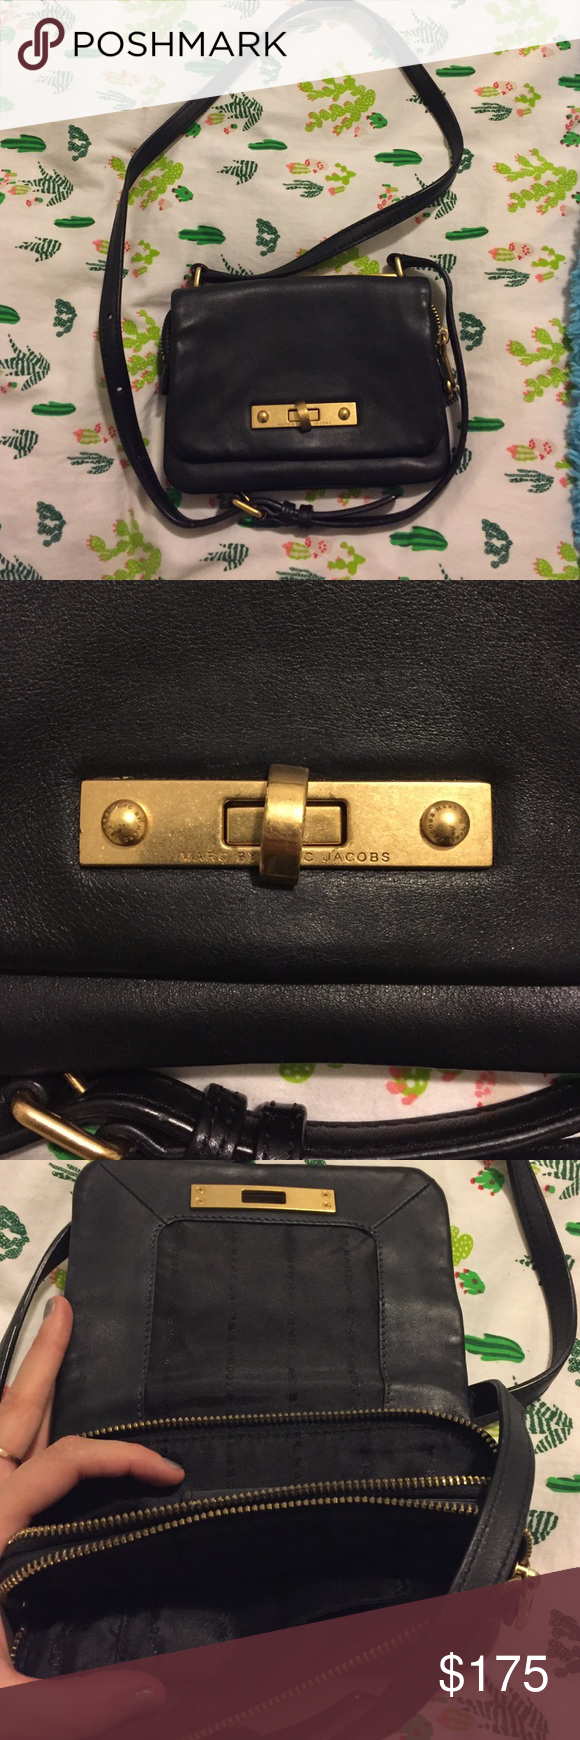 Marc by Marc Jacob crossbody black bag Great bag!! The bag has an adjustable crossbody strap. The inside has three pockets, two that zip. Make me an offer! Marc by Marc Jacobs Bags Crossbody Bags